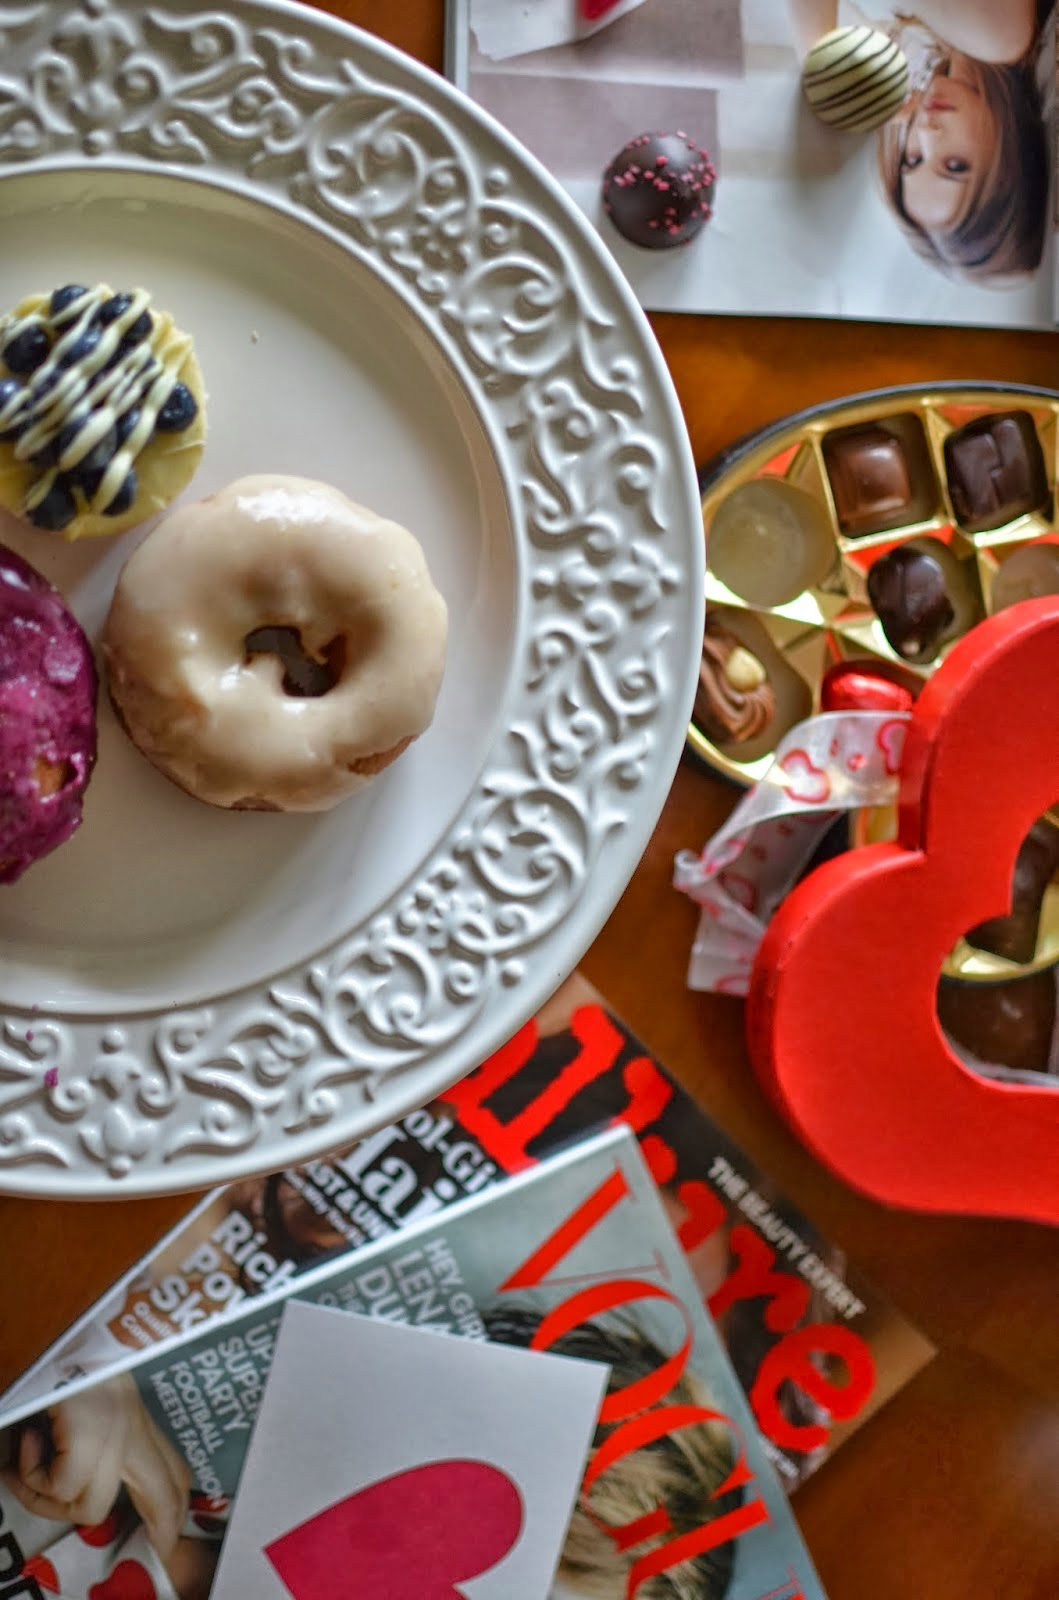 Valentine's Day prep, Valentine's day, red and pink, Vogue, sweets, donuts, chocolates